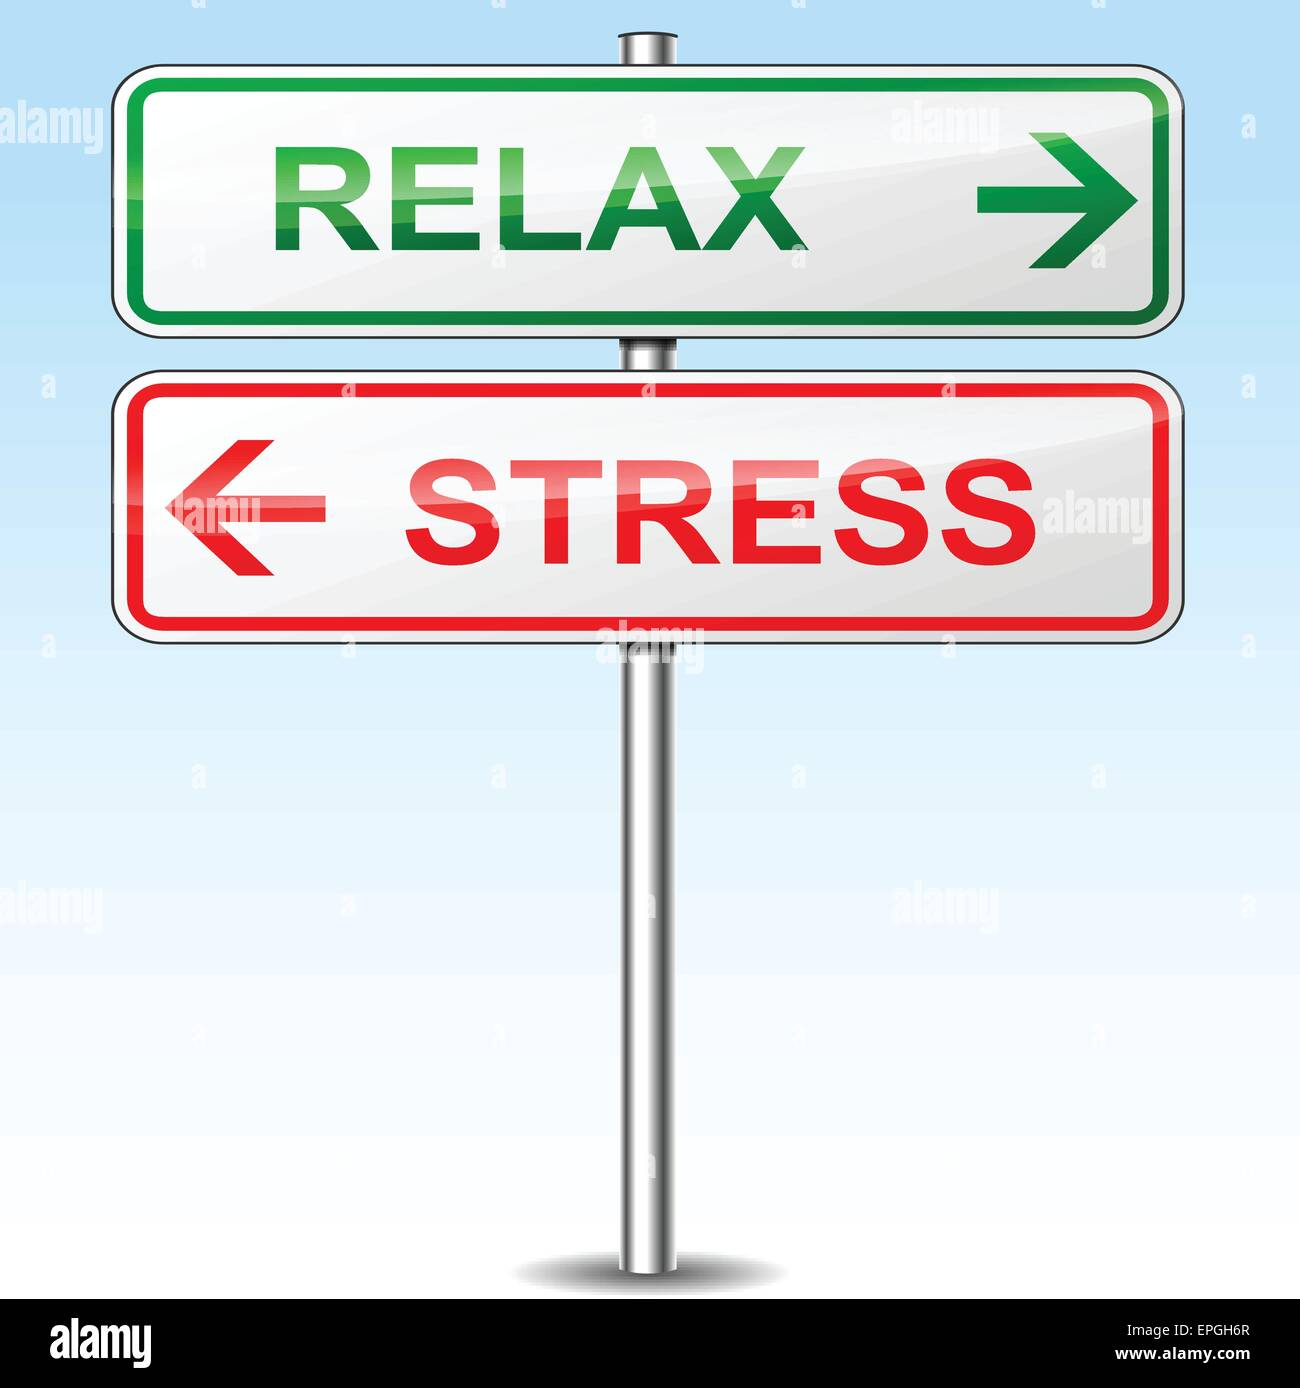 illustration of stress and relax directional signs - Stock Vector